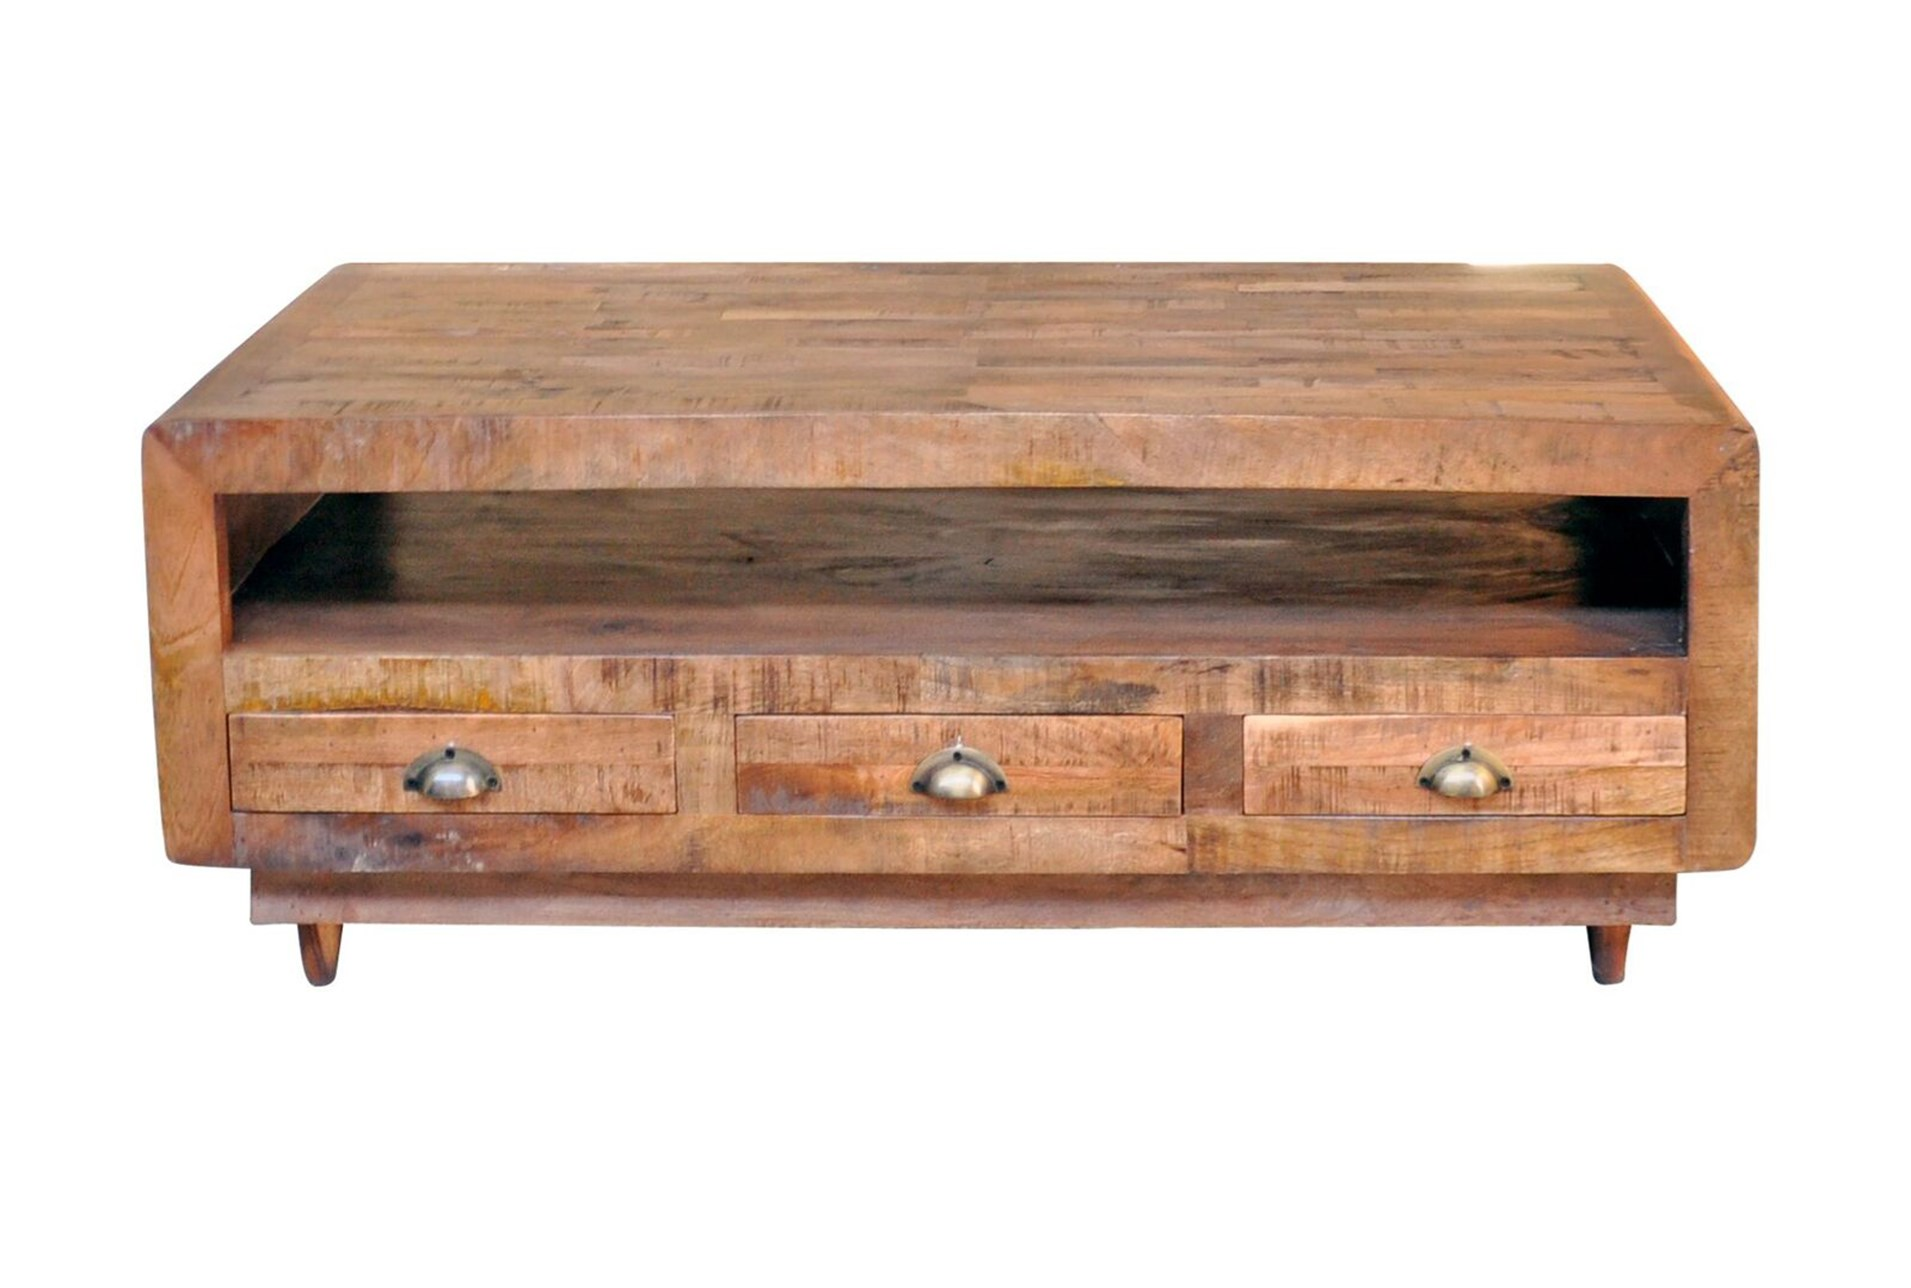 Antique Walnut Finish 6 Drawer Rectangular Coffee Table Qty 1 Has Been Successfully Added To Your Cart